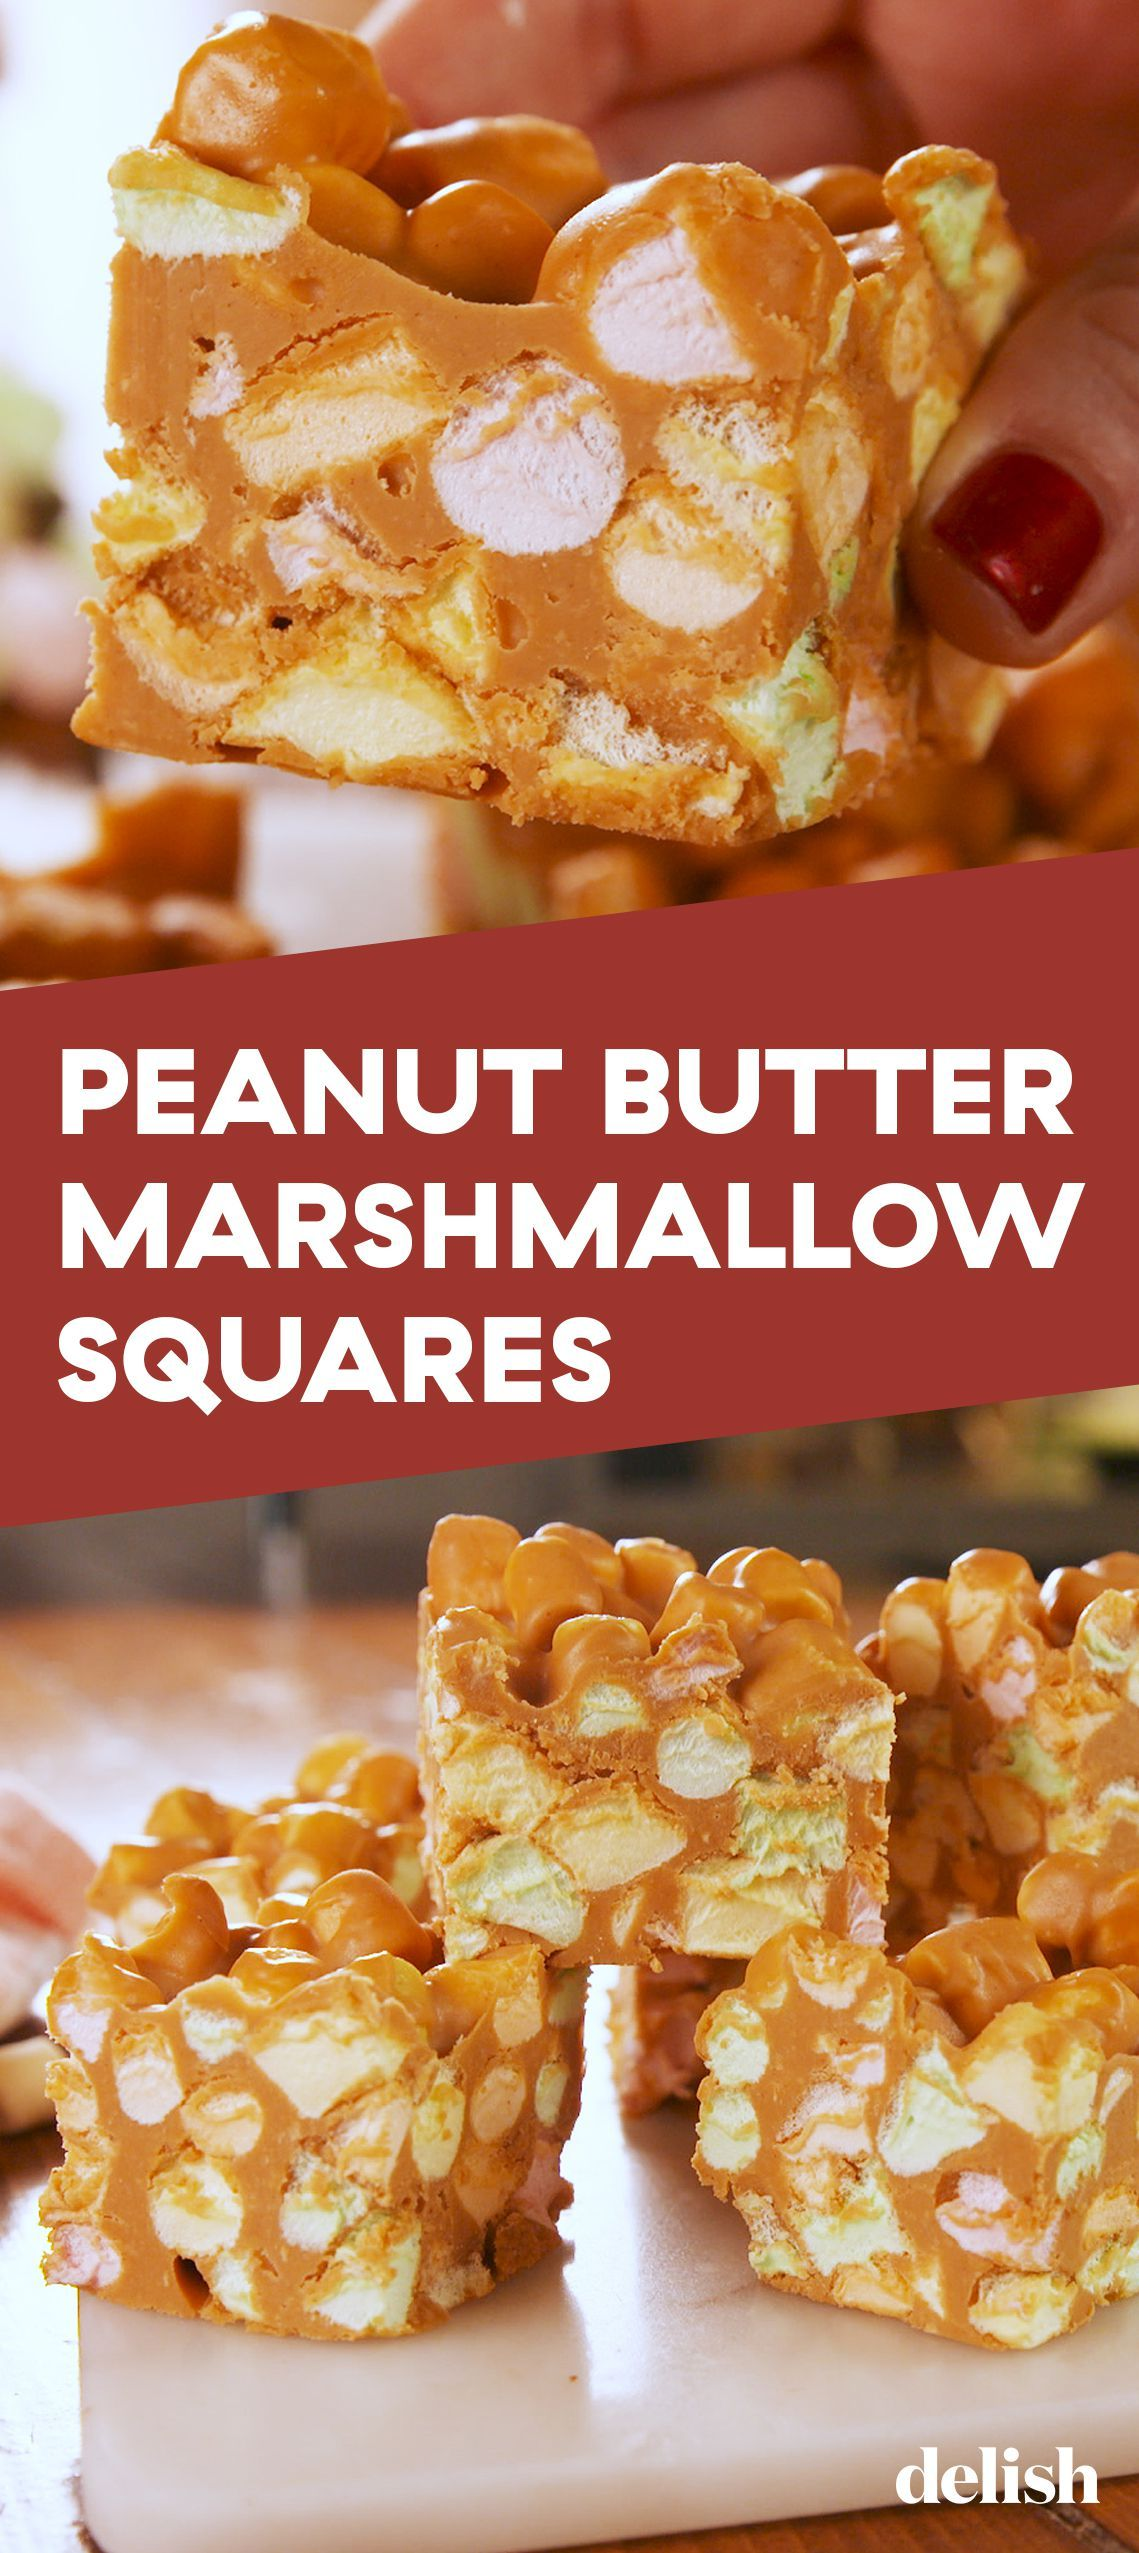 Peanut Butter Marshmallow Squares = The Ultimate Treat